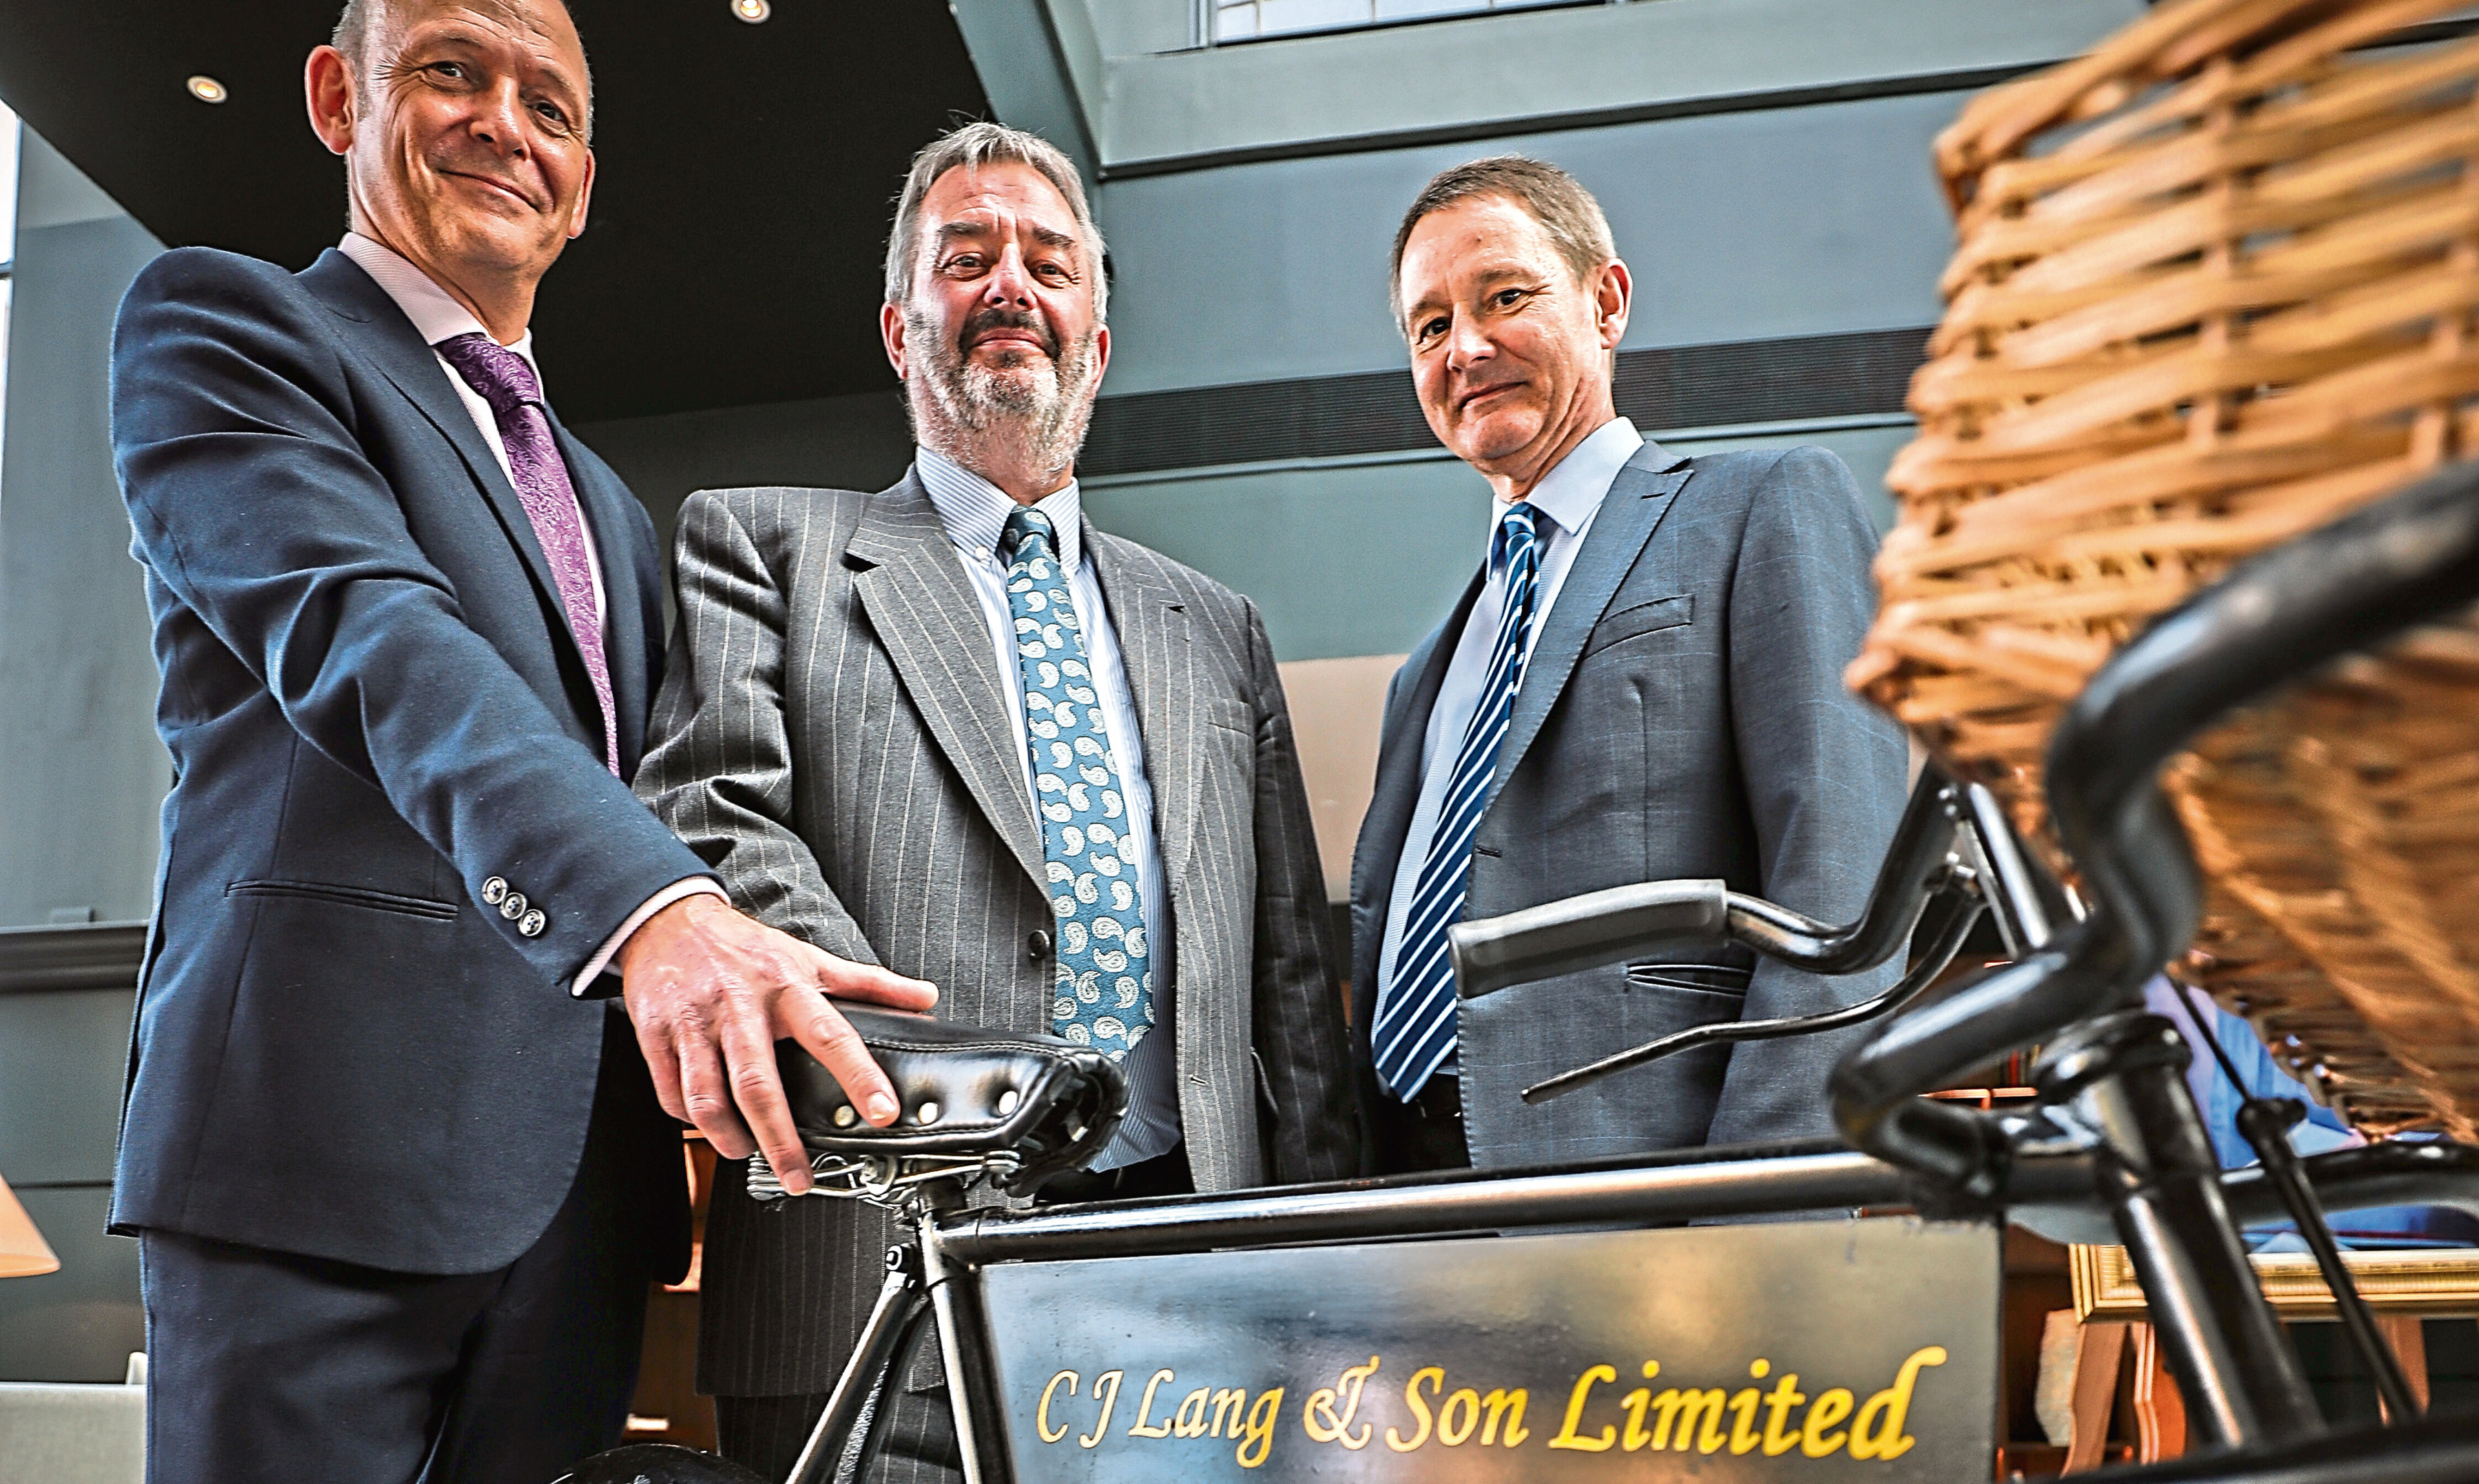 CJ Lang & Sons merchandising director Jamie Buchanan, trading director David Lamb and IT director Graham Murdoch at yesterdays celebration event at the Fairmont Hotel in St Andrews.